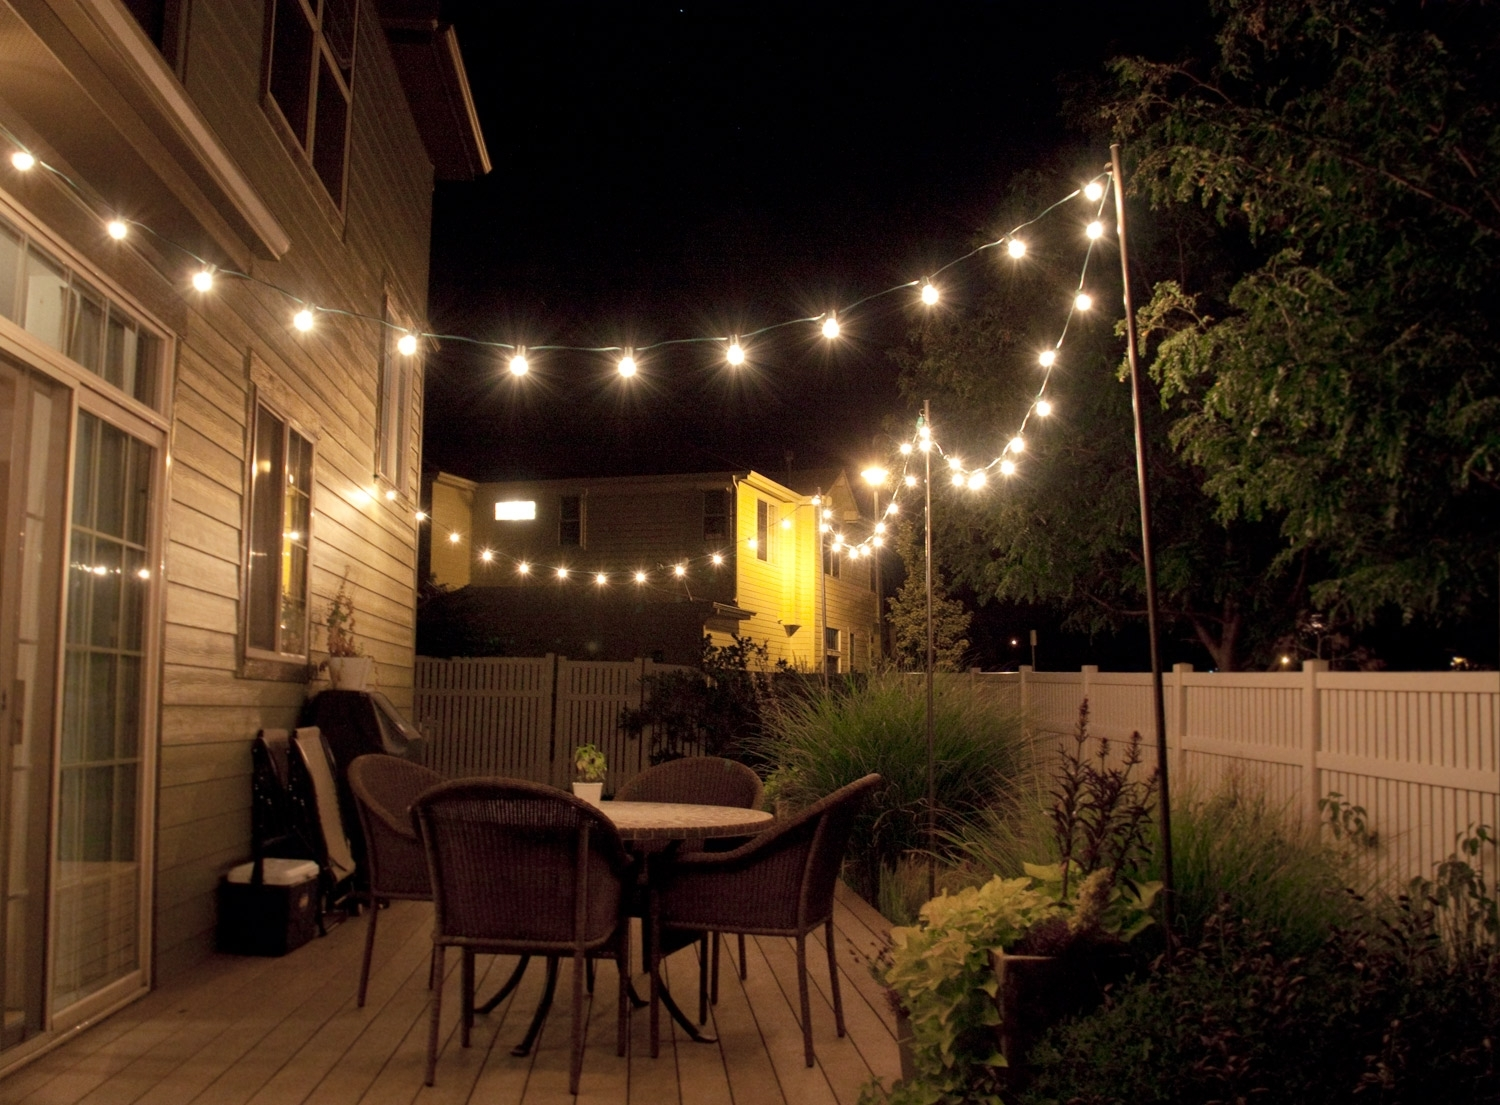 Innovative Outdoor Hanging Porch Lights To Make Your Home Look regarding Outdoor Lanterns at Target (Image 10 of 20)